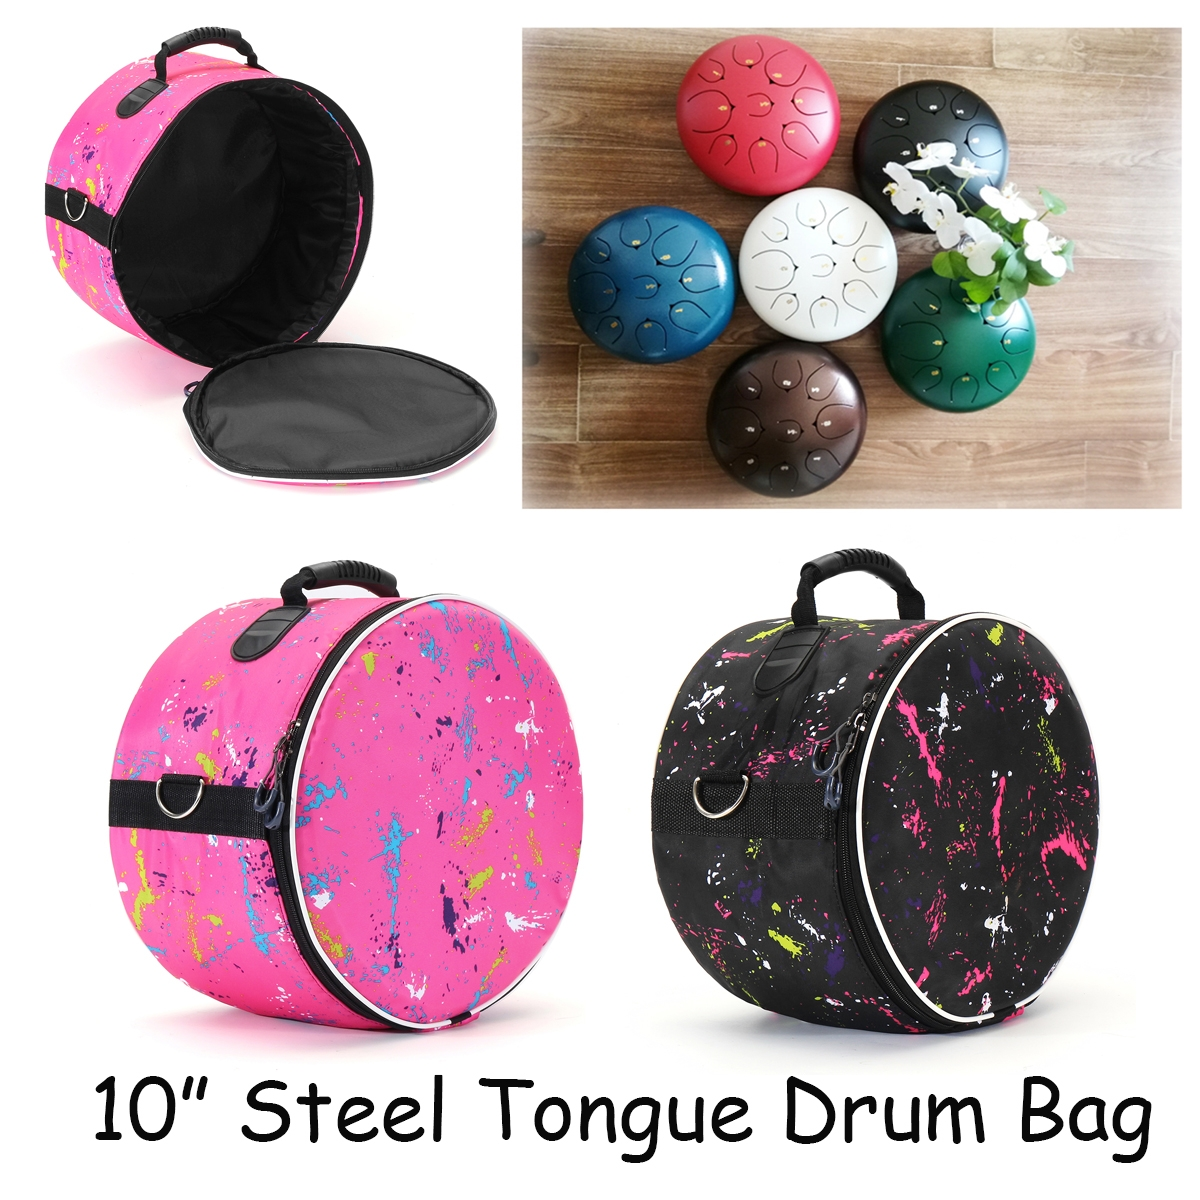 10 Inch Oxford Fabric Steel Tongue Drum Bag Durable Portable Shoulder Bag Handbag